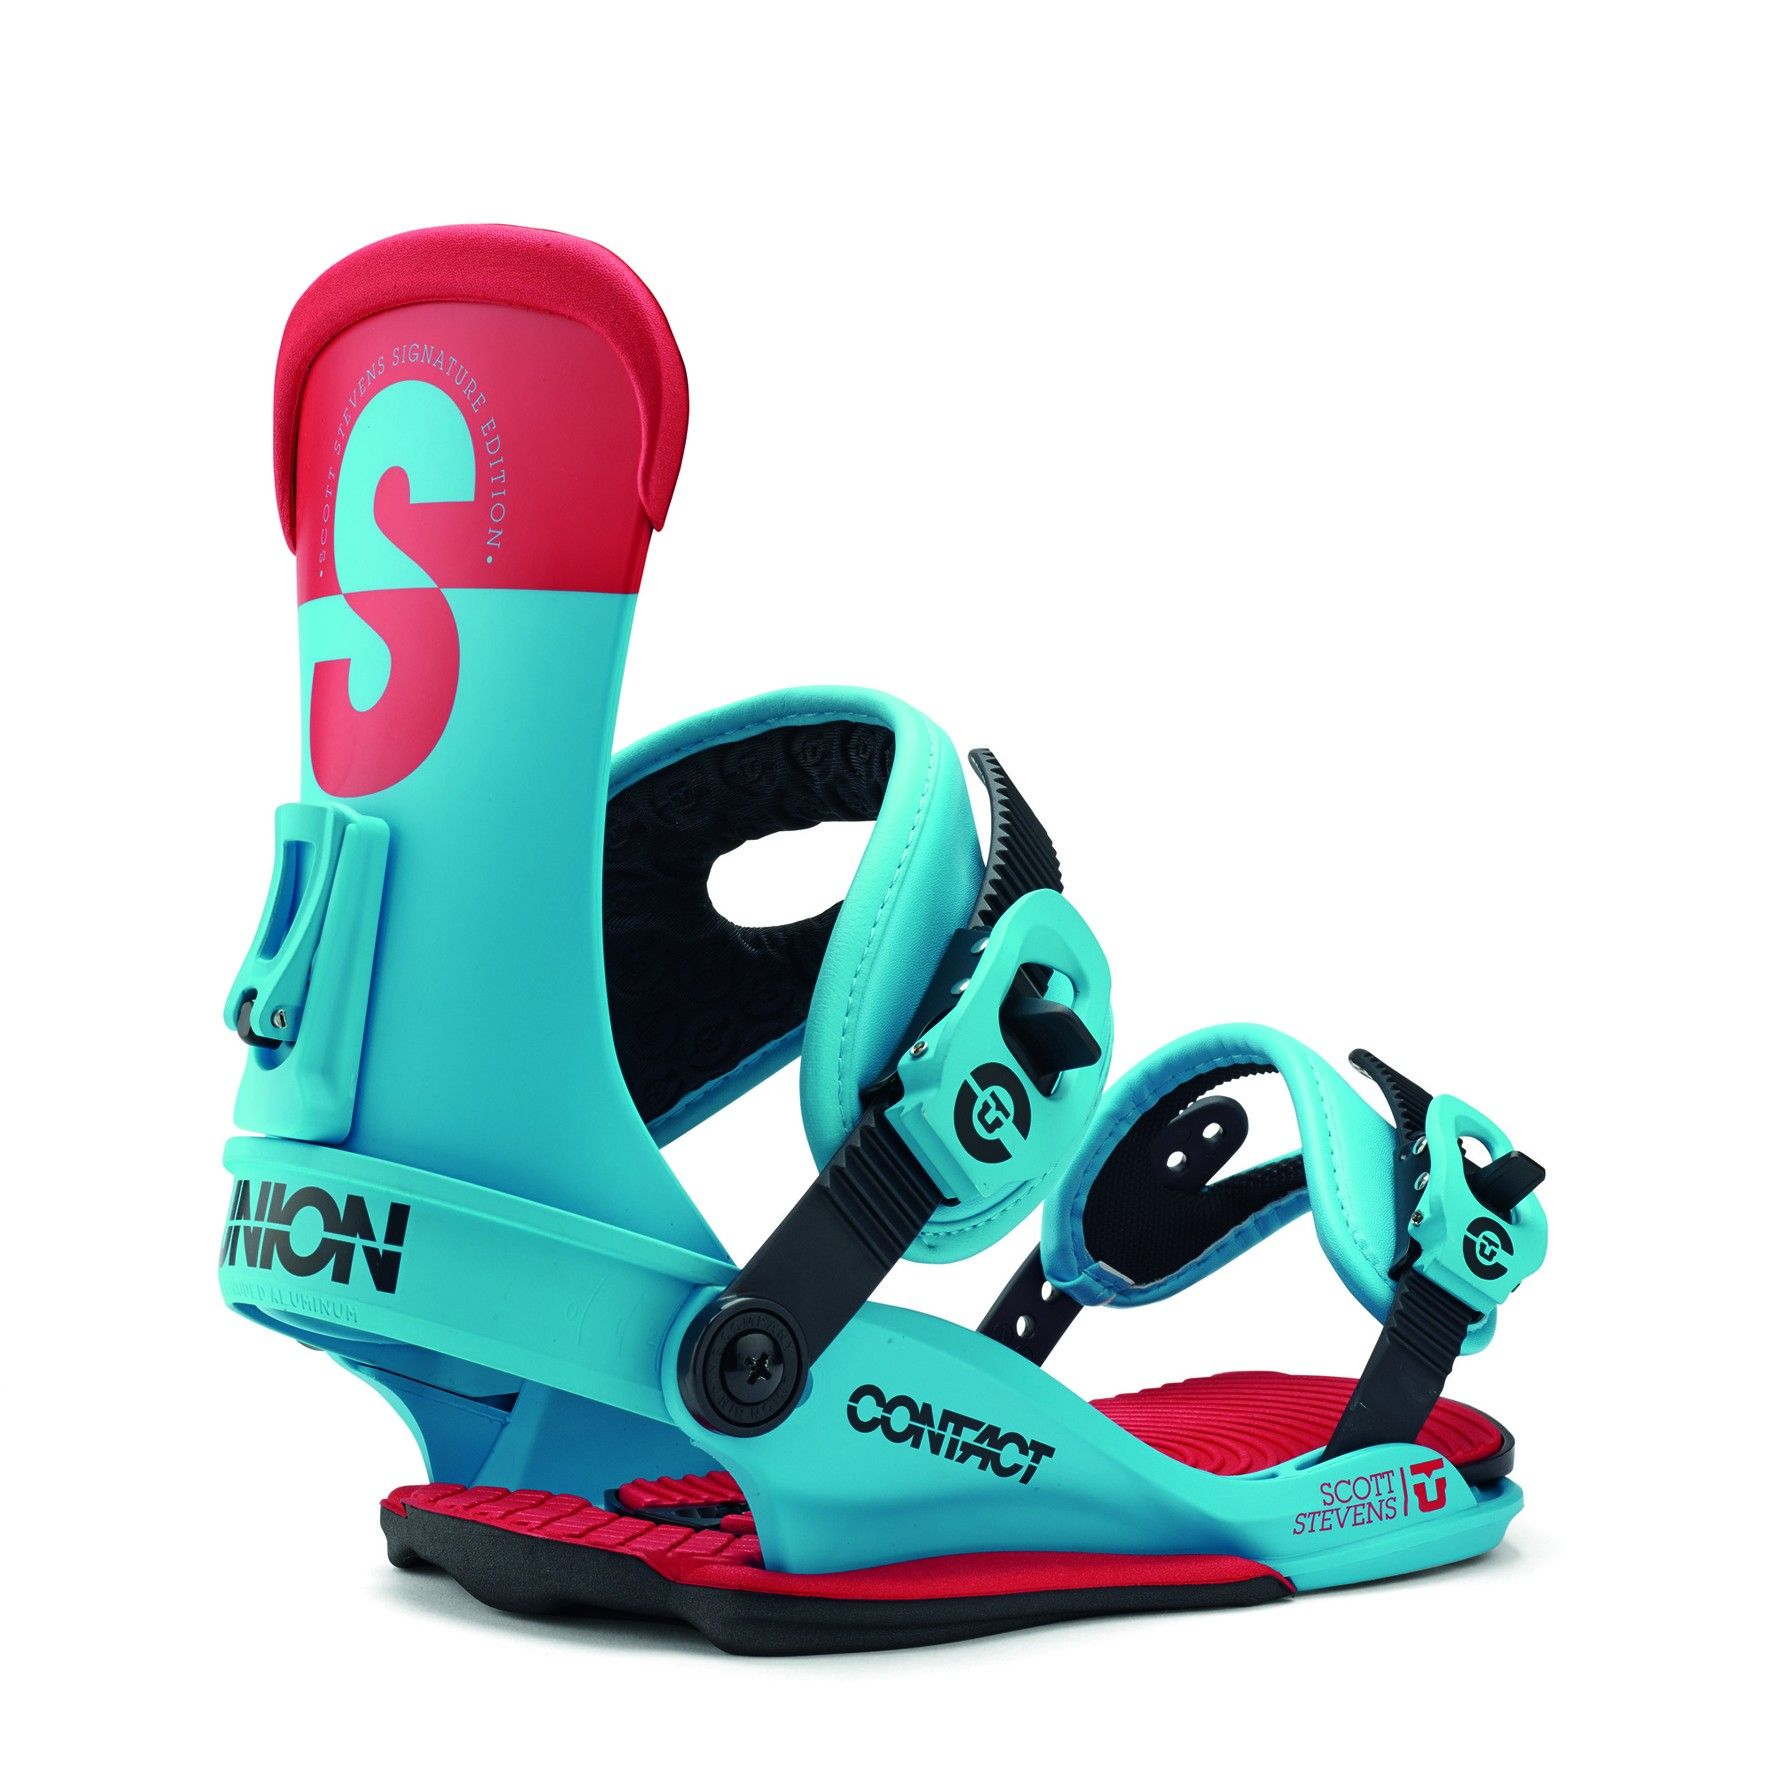 UNION CONTACT SCOTT STEVENS SNOWBOARD BINDINGS 2015 (With